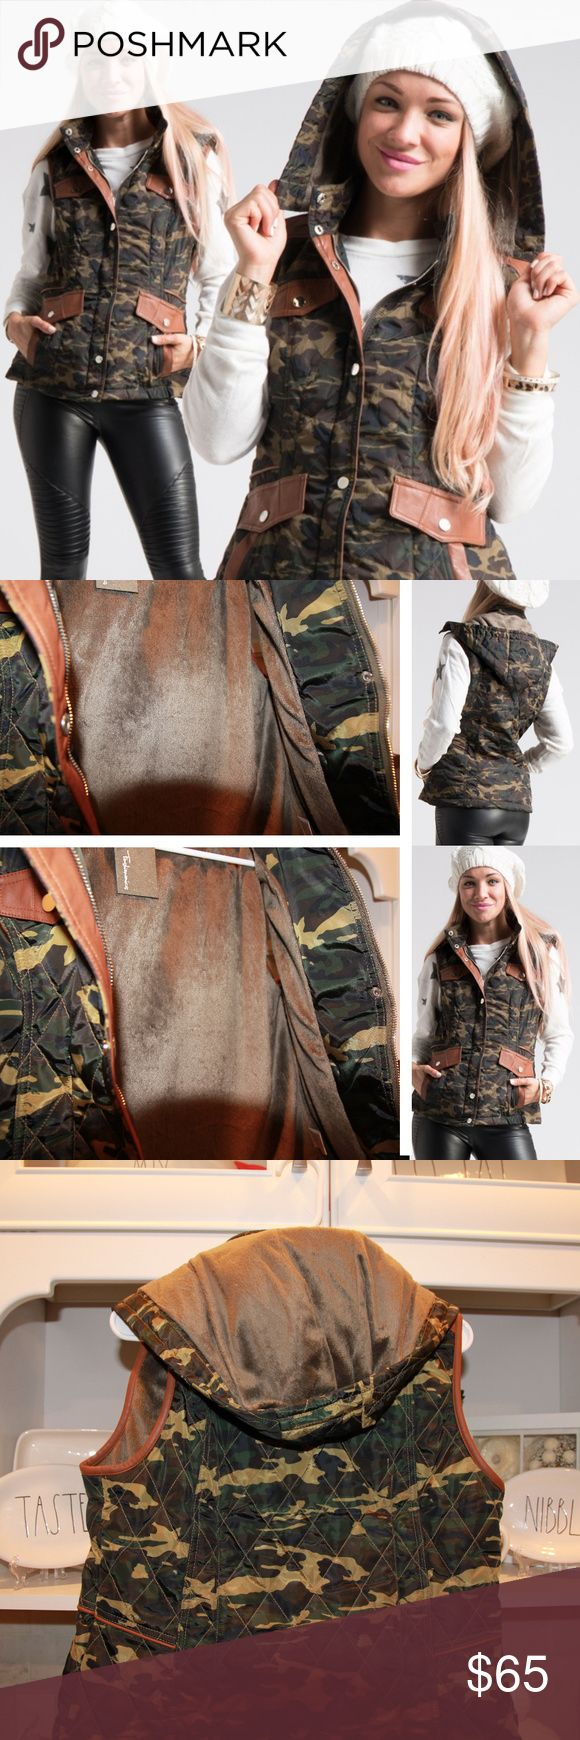 Camo vest with faux fur lining, hooded camo vest Only 3 LEFT! Top seller! camo vest with faux fur, quilted camo vest for women. SUPERB quality! NWT  Faux fur lined camouflage vest  Faux fur lined in the inside (see pics), leather decals around pockets & other areas Stylish & high quality camo vest, AMAZING!  Honestly, if the one in my size doesn't sell soon I'll be stealing it for my closet haha. Love this! 100%POLYESTER. Major high quality with this!   Quilted vest, quilted camouflage vest…